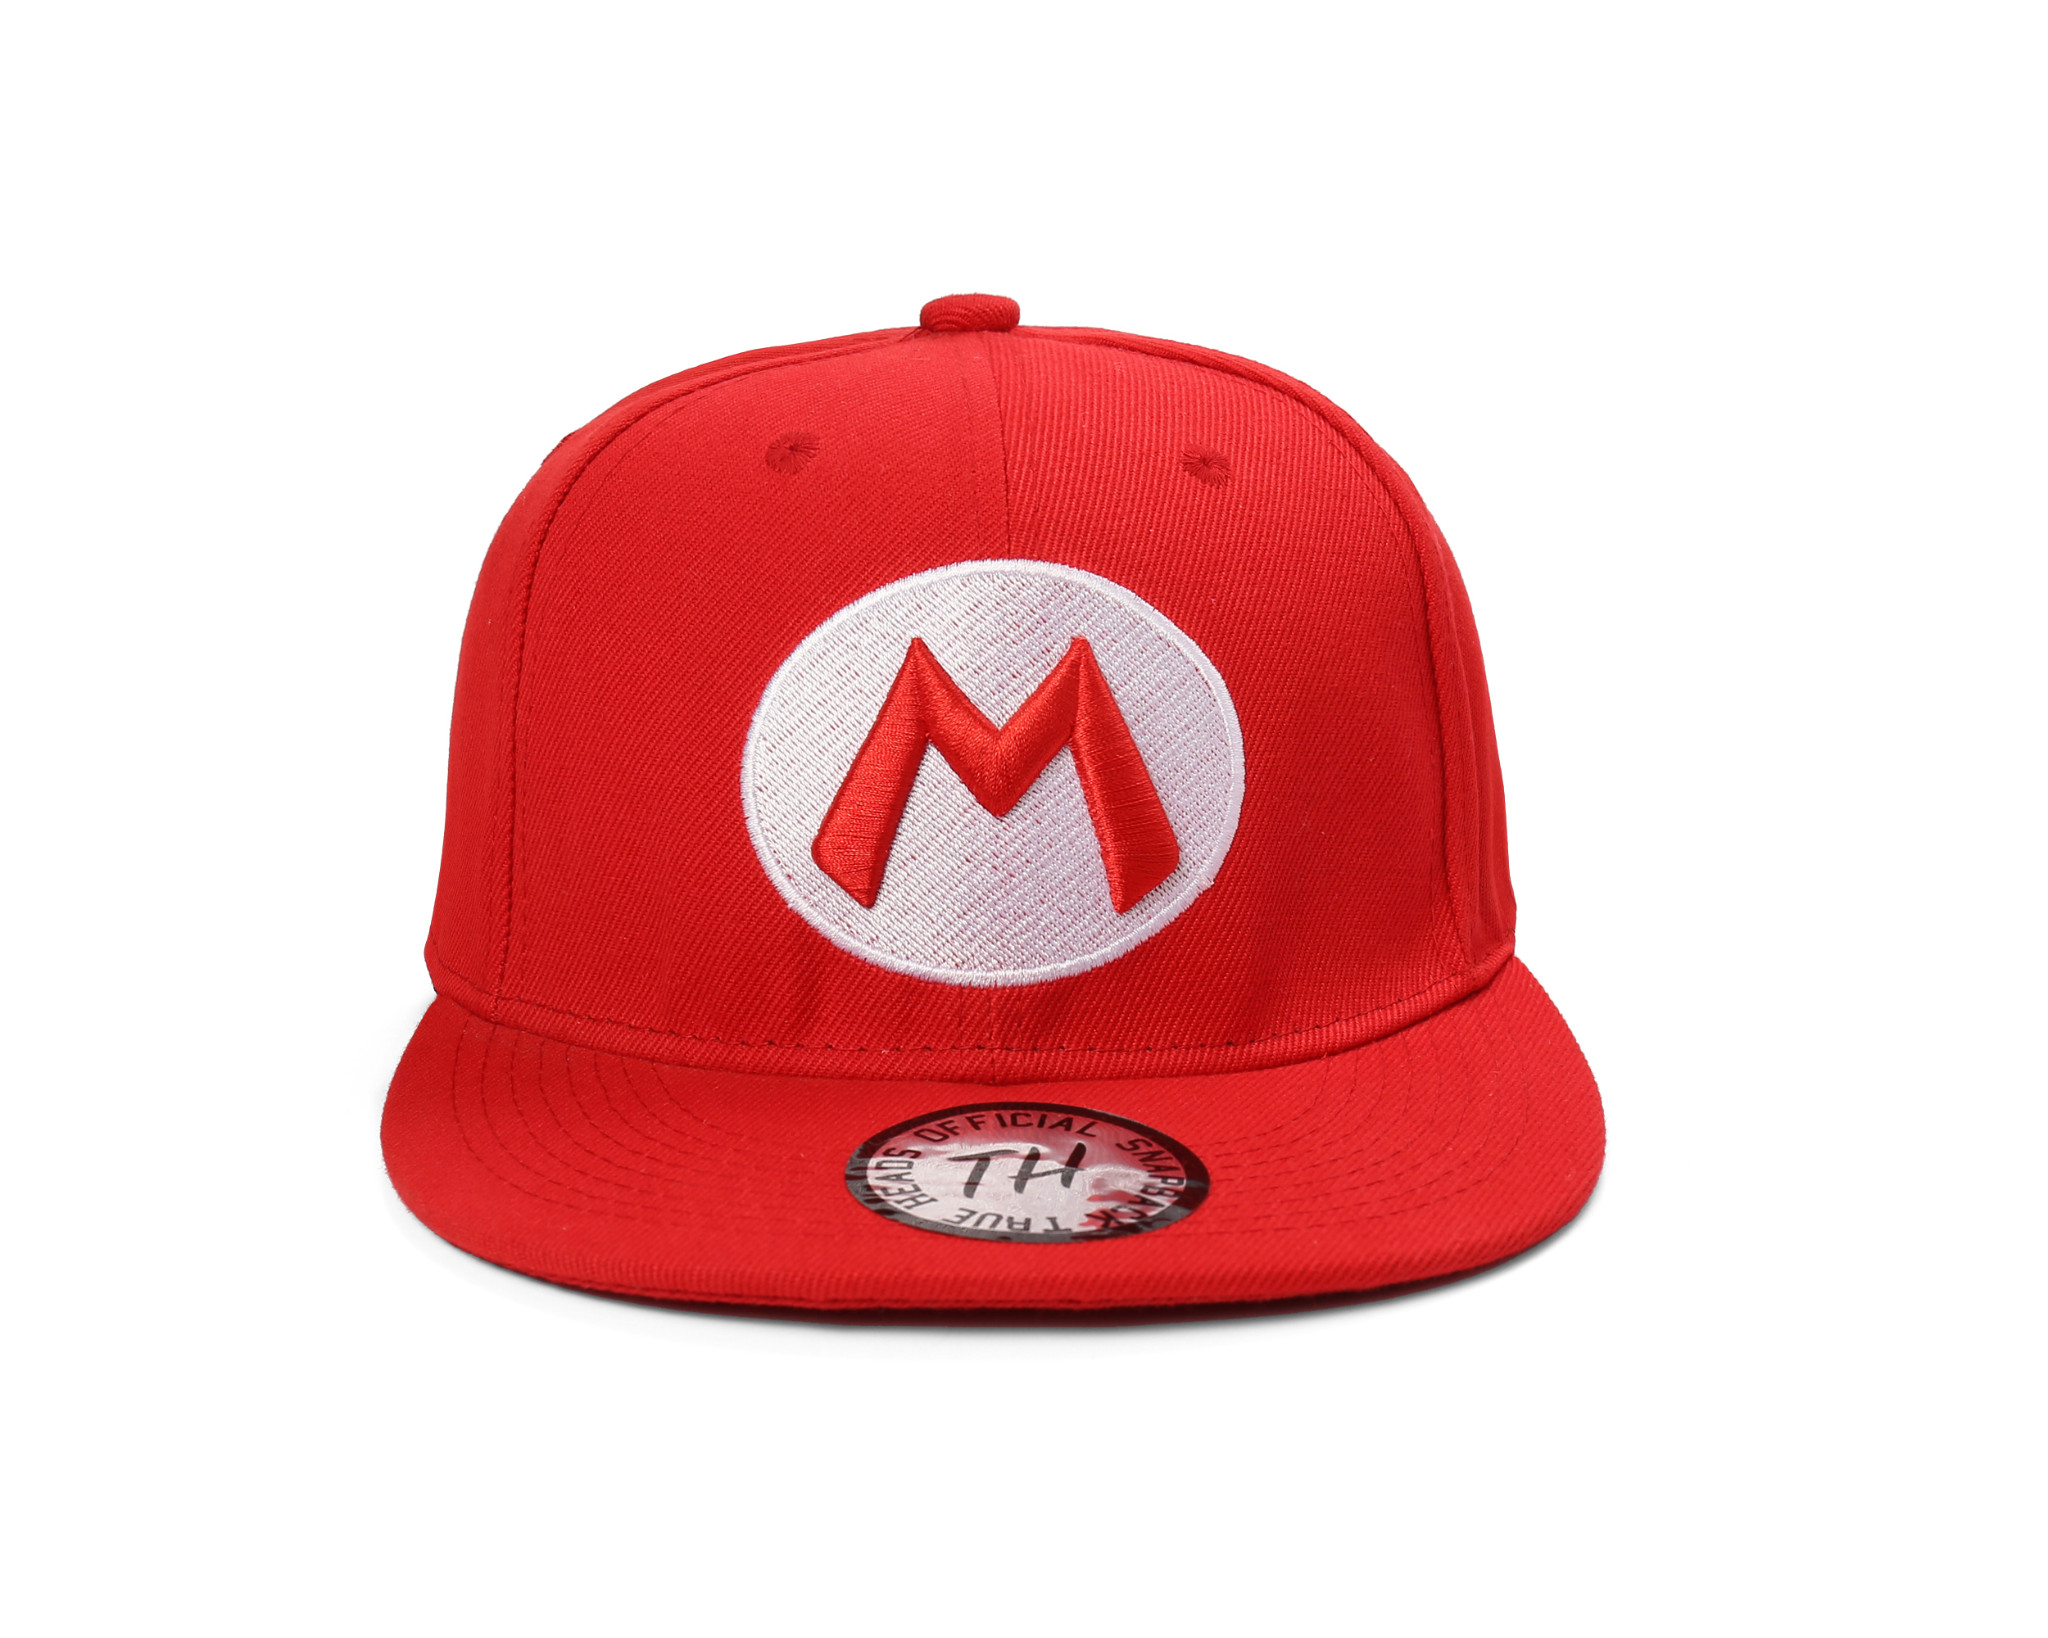 483792f5f Details about True Heads Snapback Super Mario Red Baseball Cap